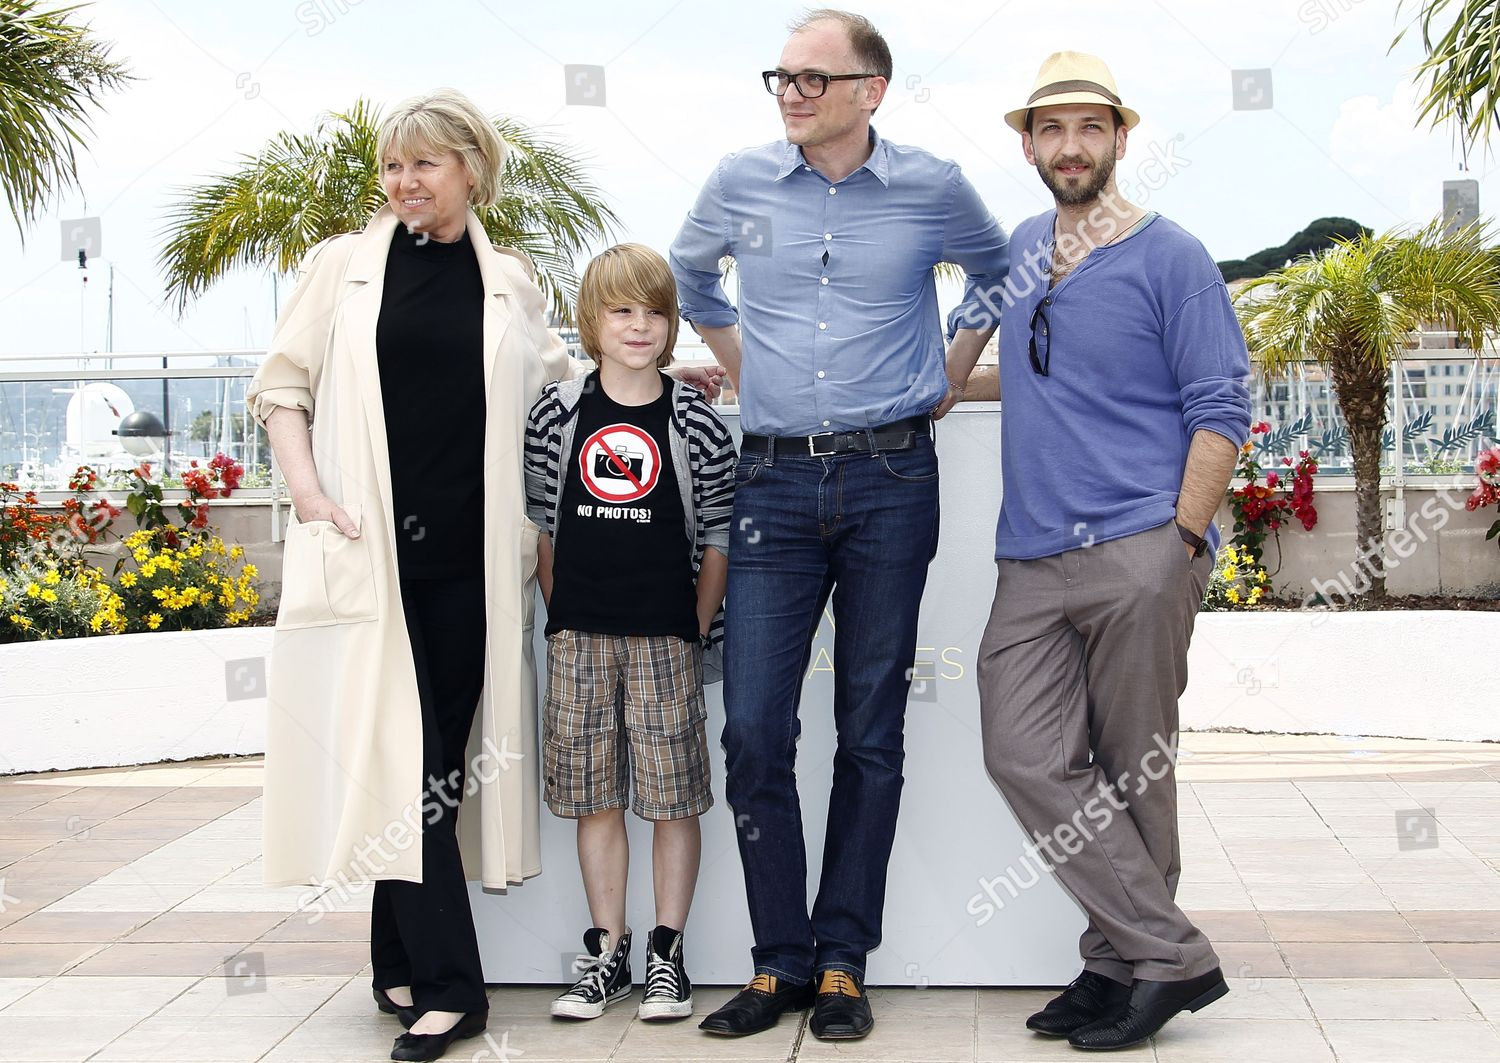 Stock photo of France Cannes Film Festival 2011 - May 2011